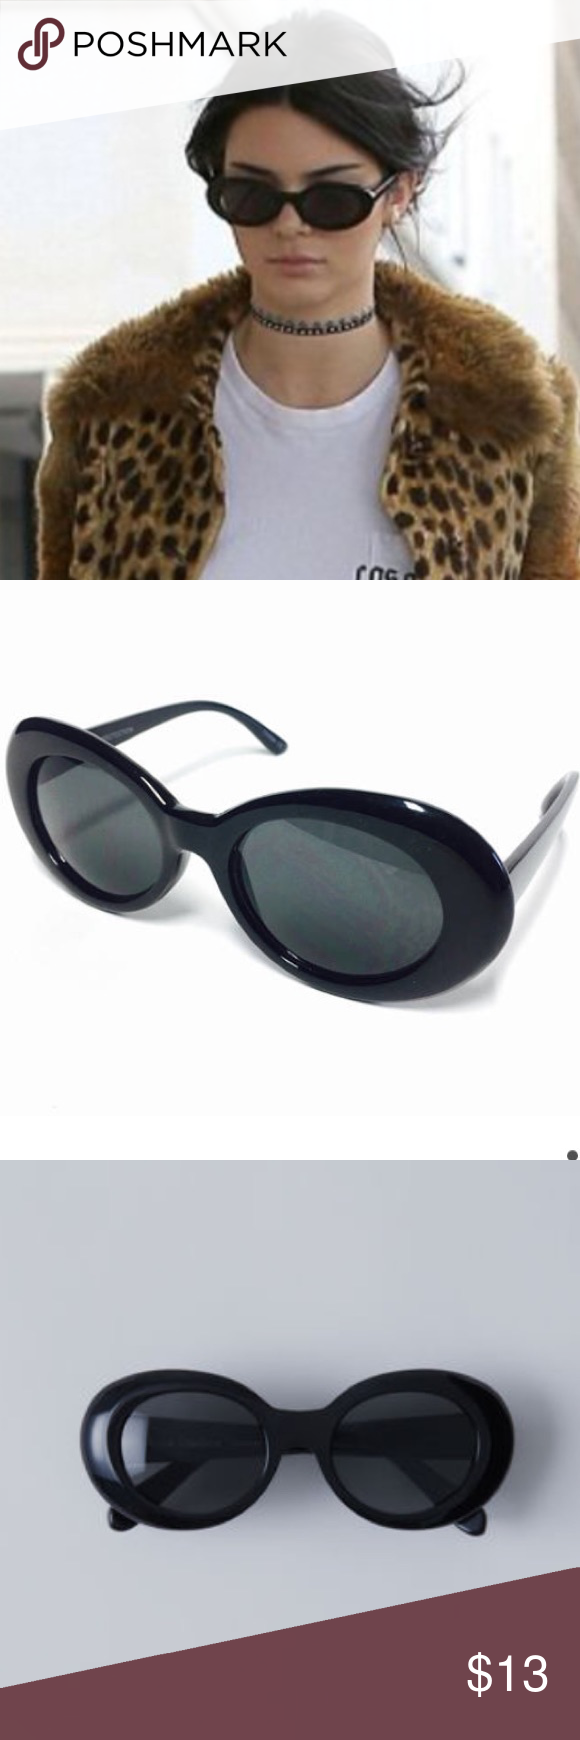 396b80343b Black Oval Clout Goggles   sunglasses Brand new black oval unisex clout  goggles. Kurt Cobain clout goggles. Available in 3 colors (white